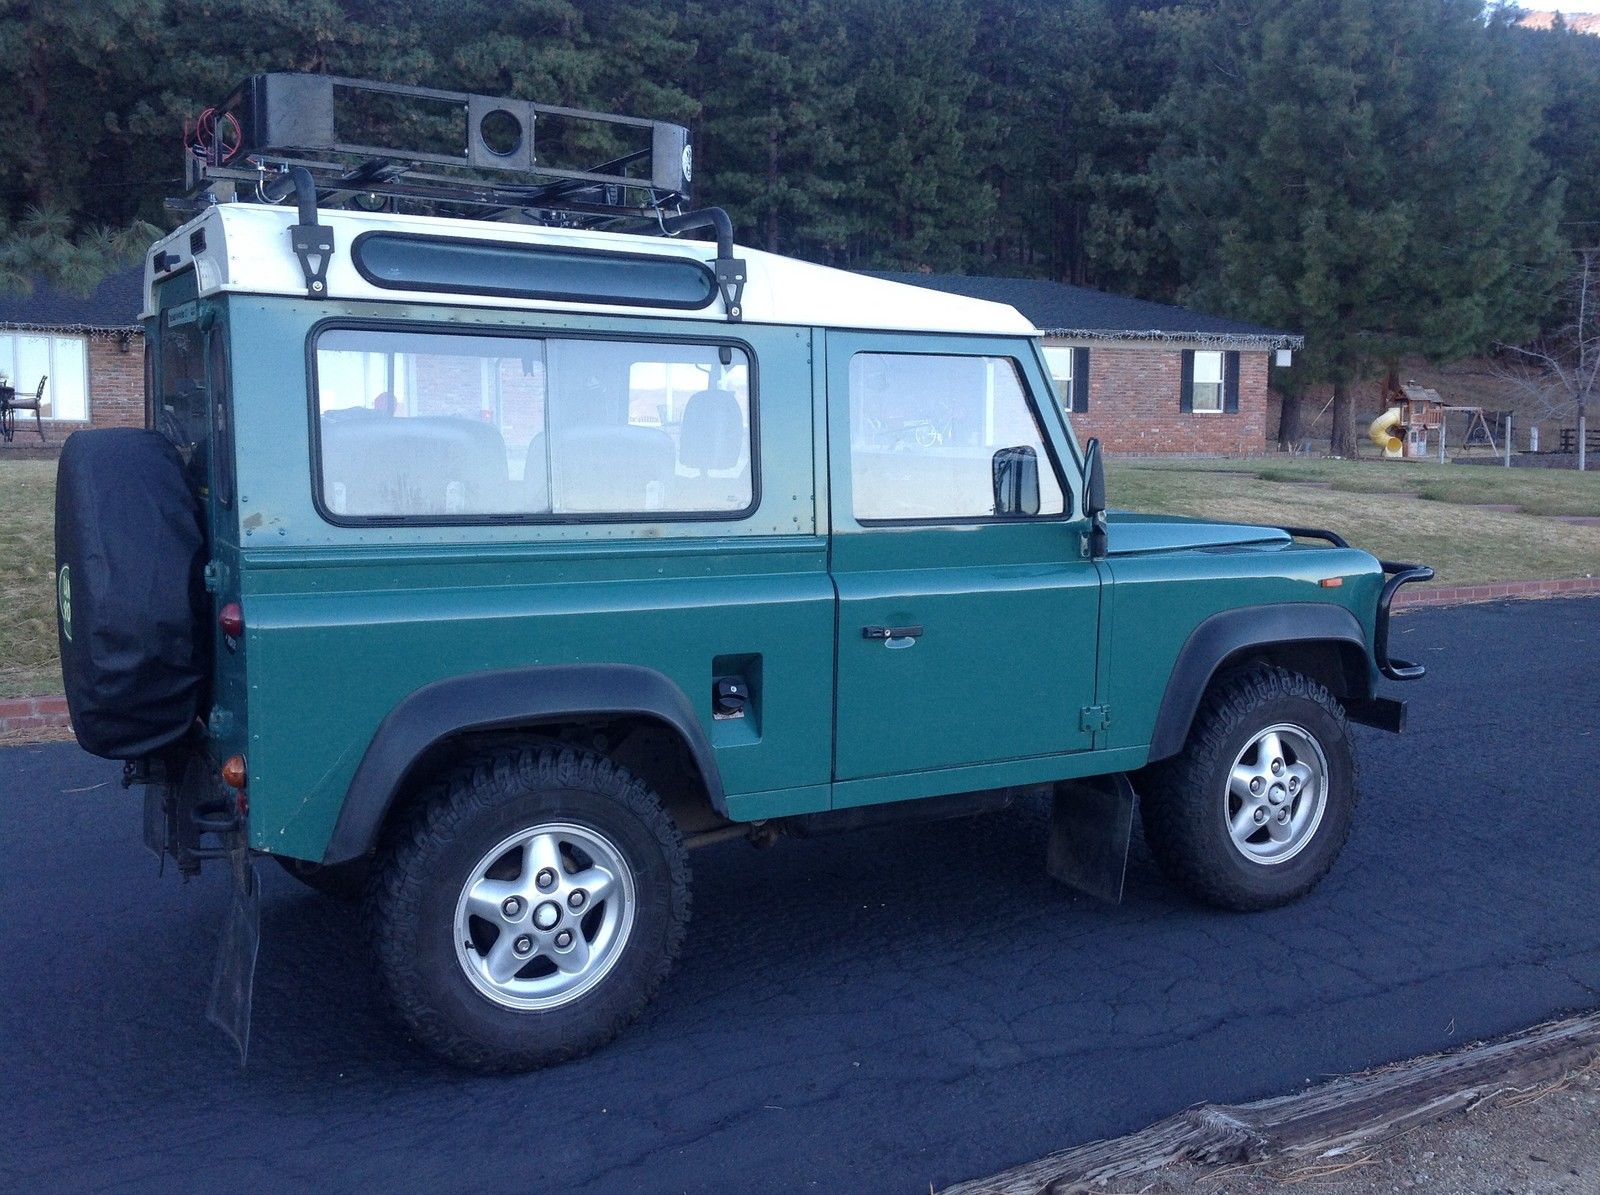 Reno Land Rover >> 1988 Land Rover Defender 90 - Classic Land Rover Defender 1988 for sale